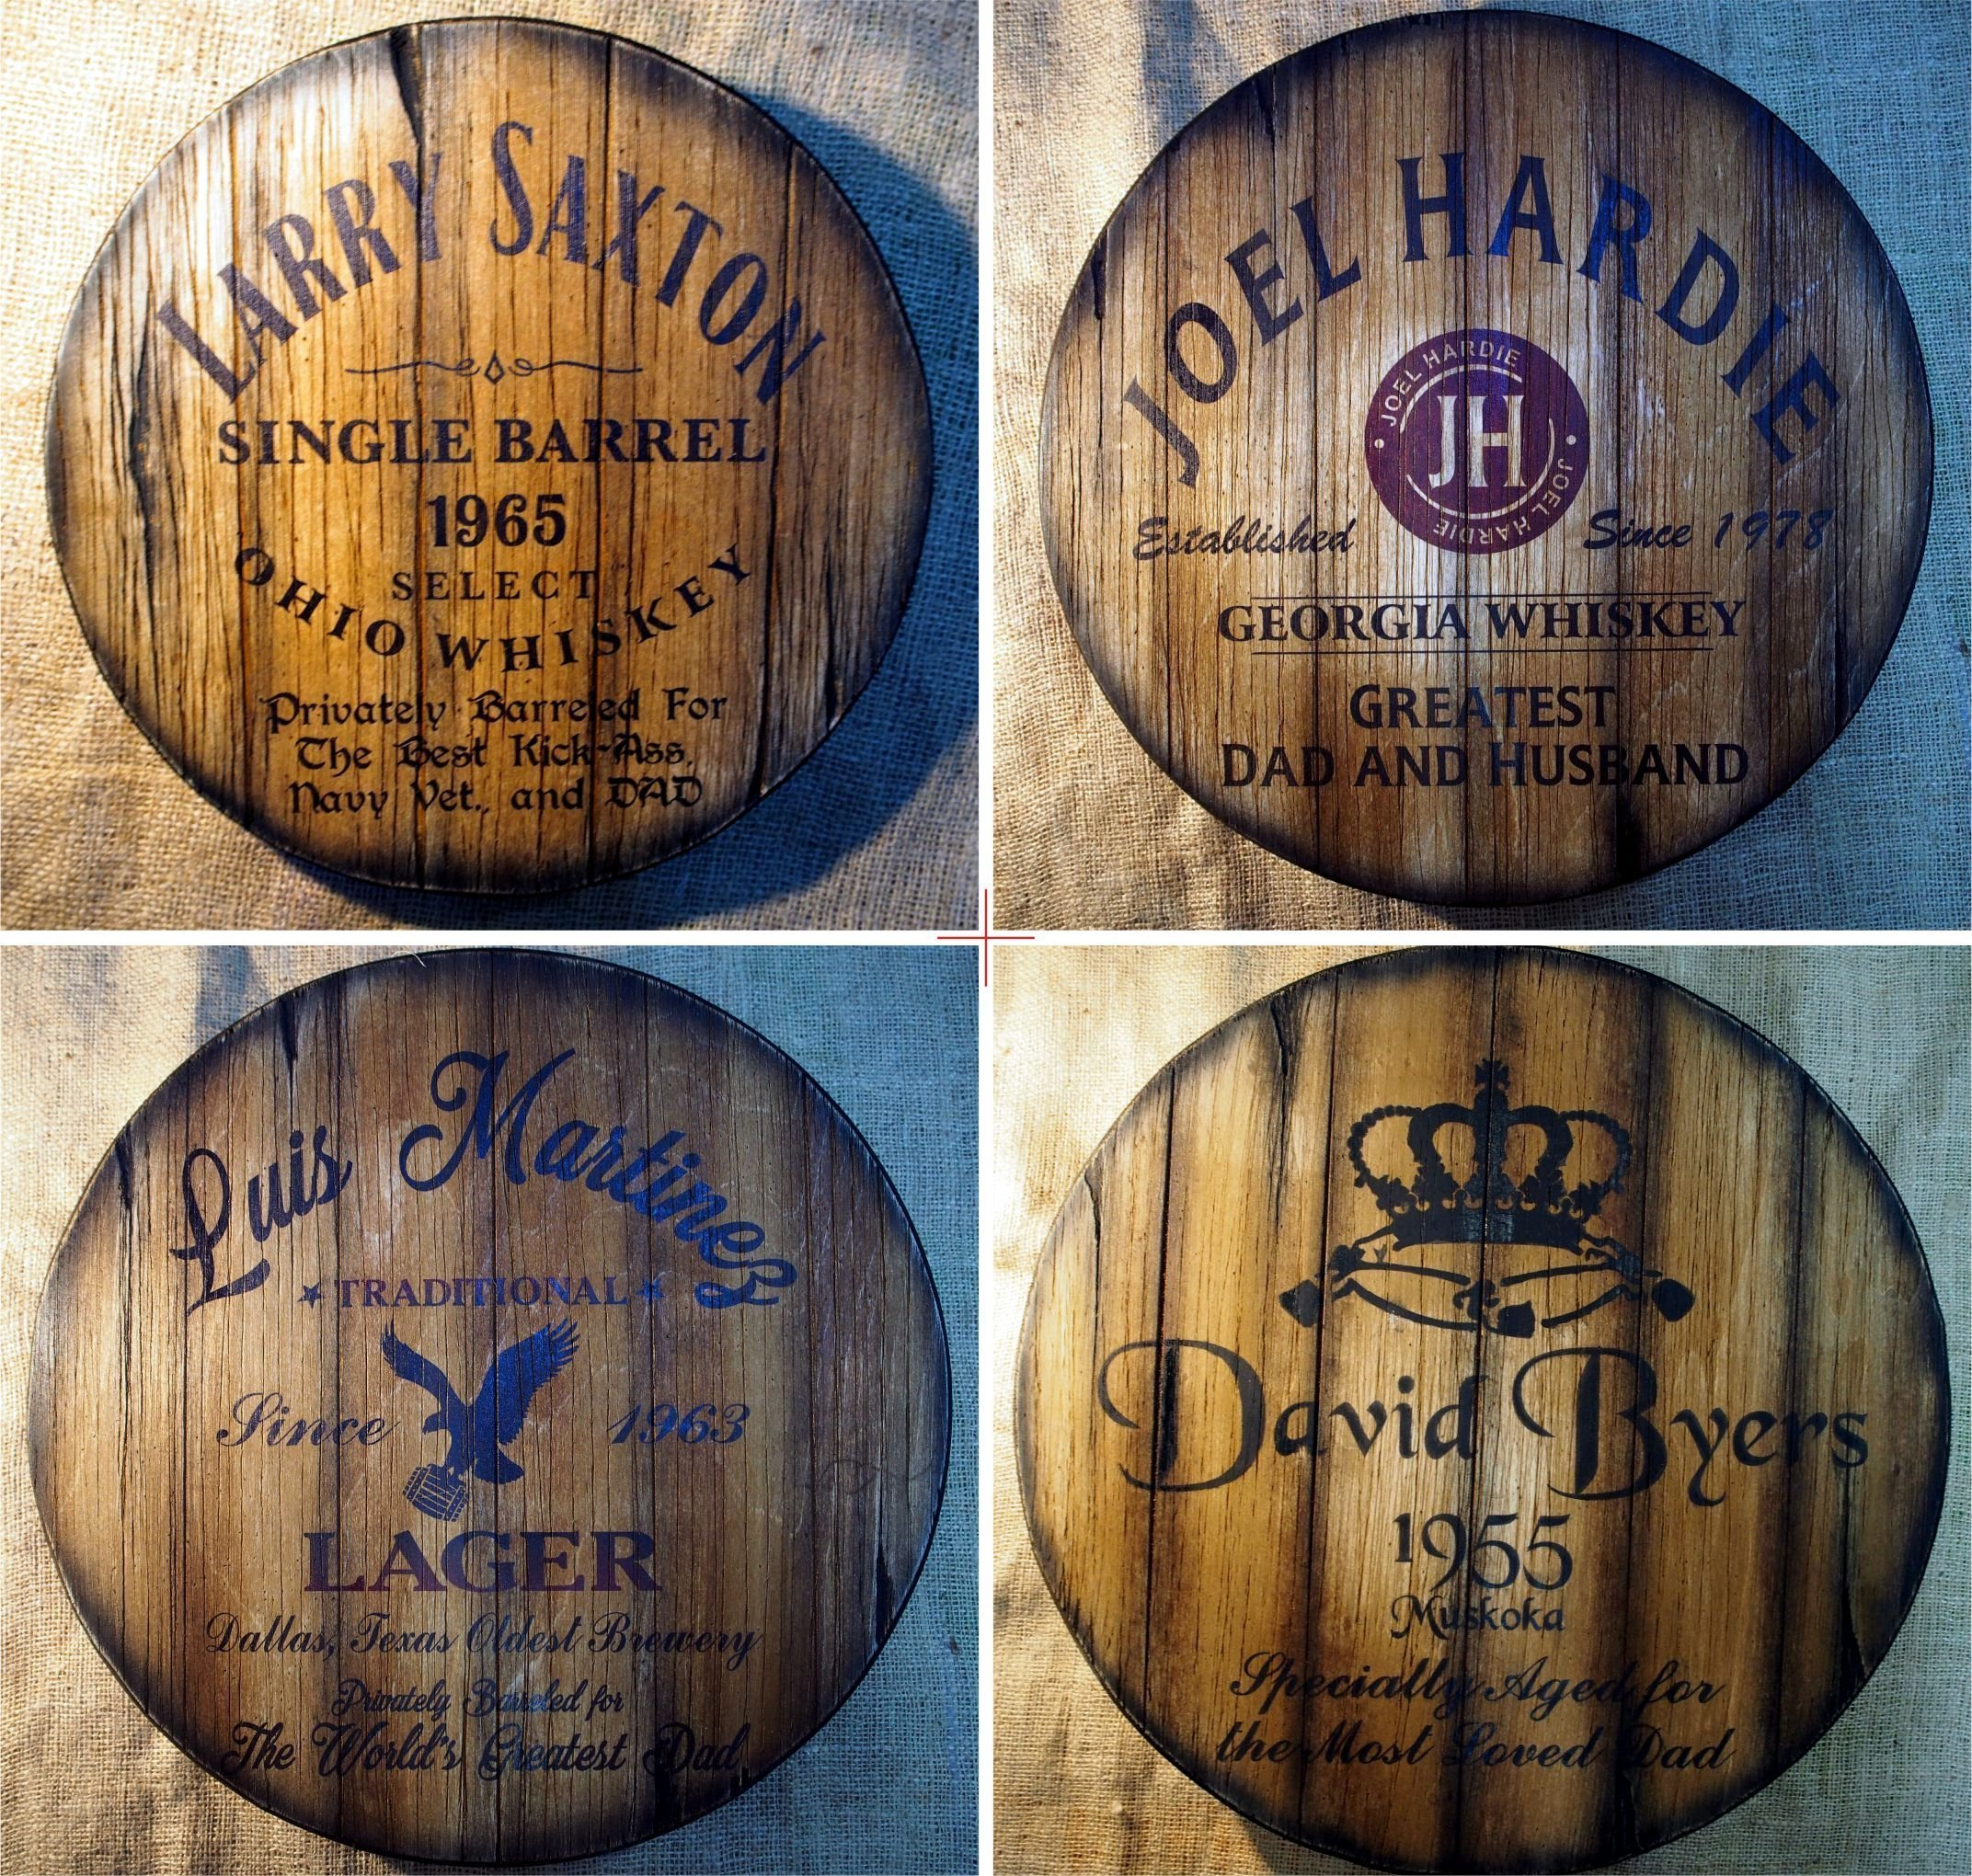 Father's day Personalized Gift | Decor sign inspired by old whiskey and beer barrel tops | Rustic wall decor | Hand-painted artwork on aged wood | Unique gift for dad | Man Cave, Home Bar decoration